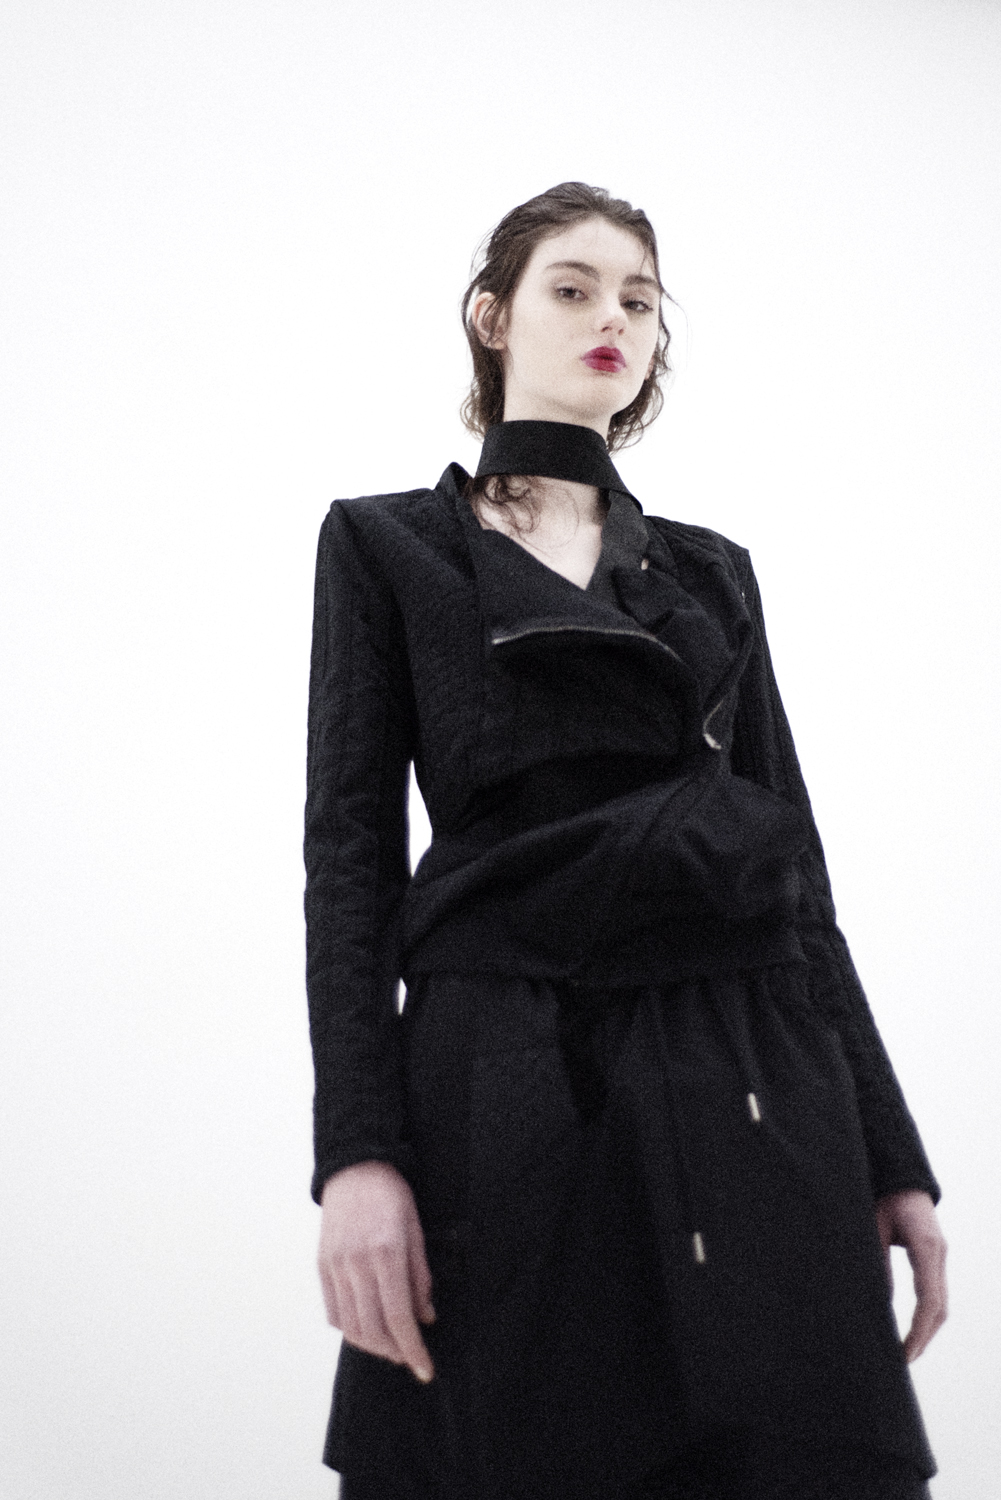 top Roque by Ilaria Nistri, pant Byungmun Seo, leather belt Ilaria Nistri